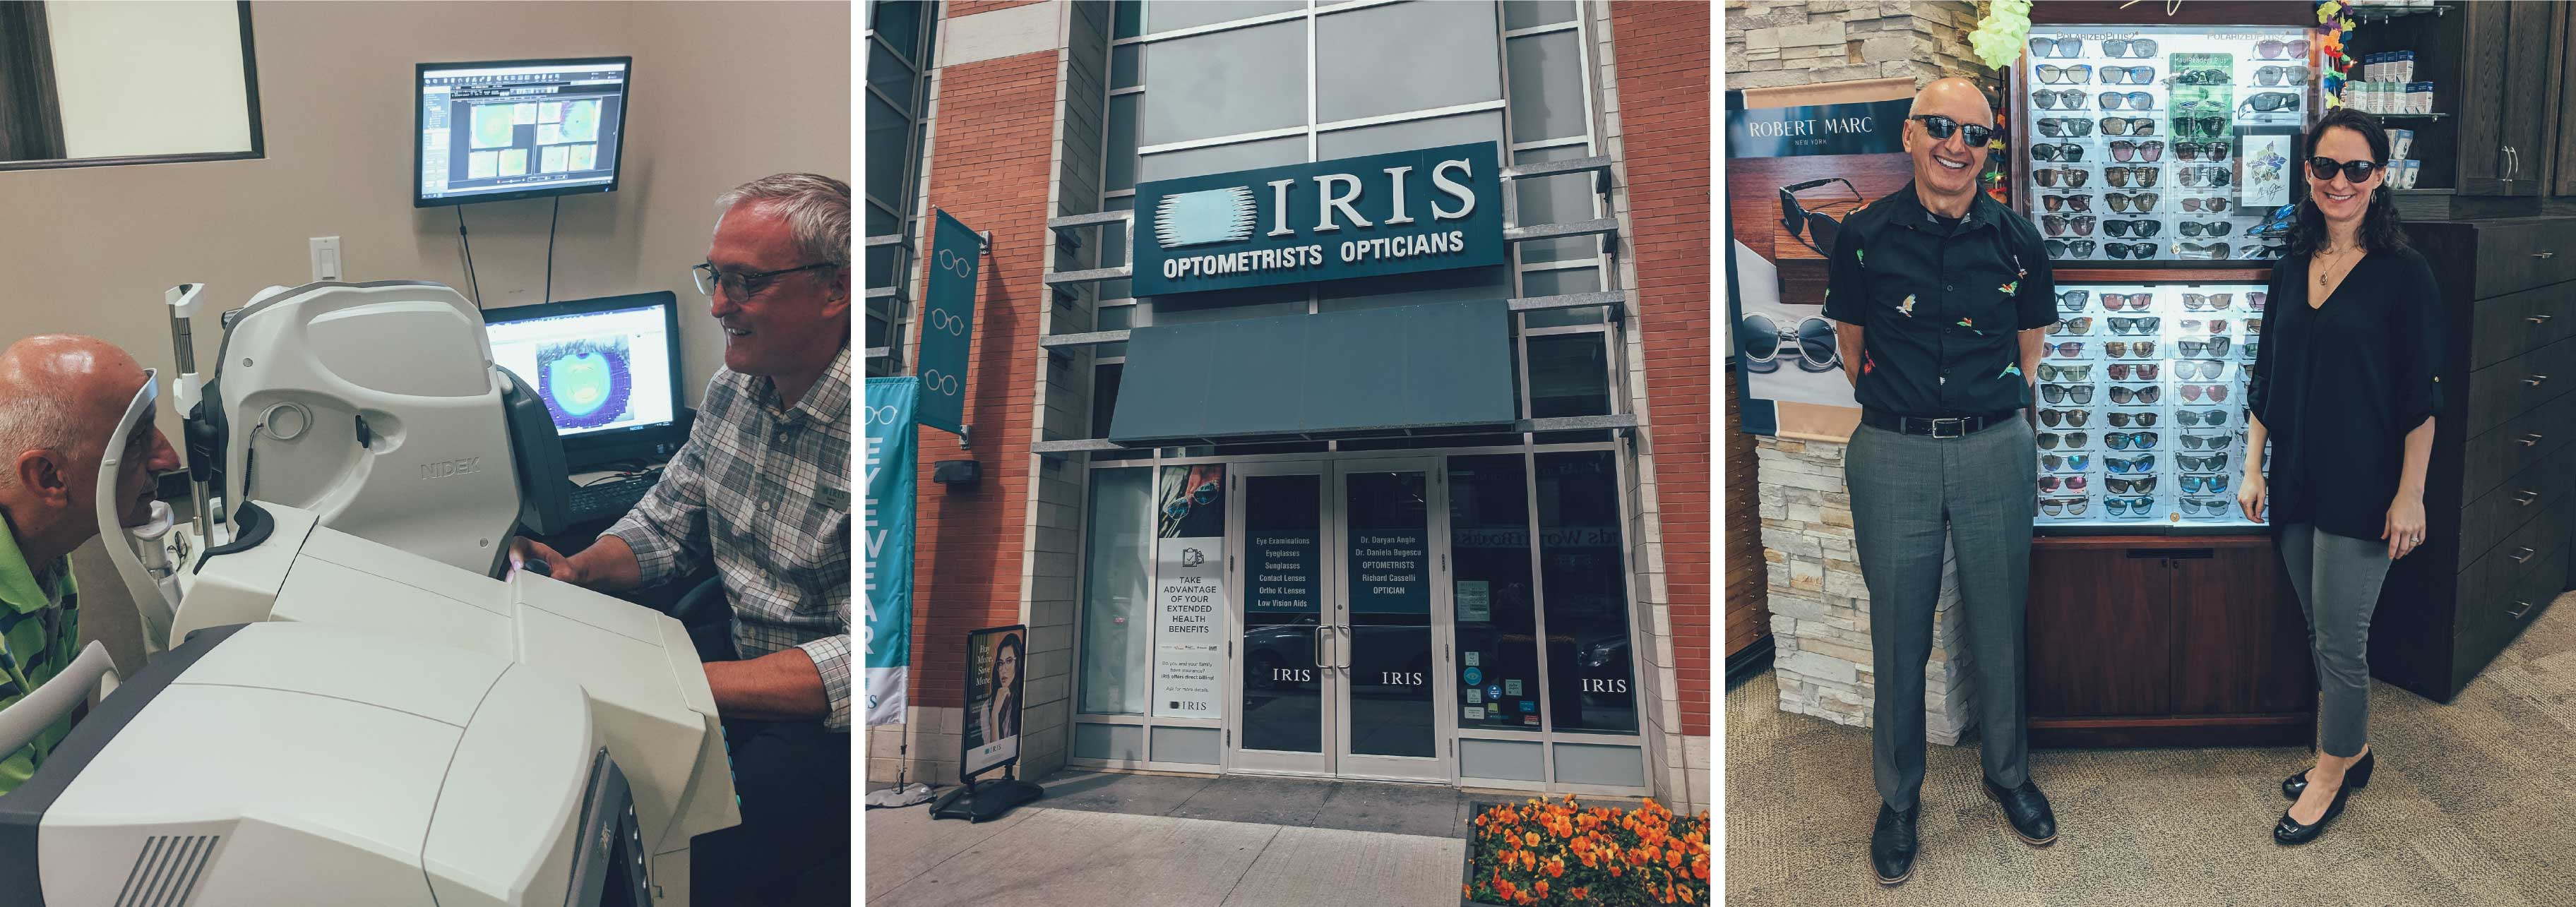 The team at IRIS Waterloo is standing in from tof the sunglasses stand and a patient is having an eye exam